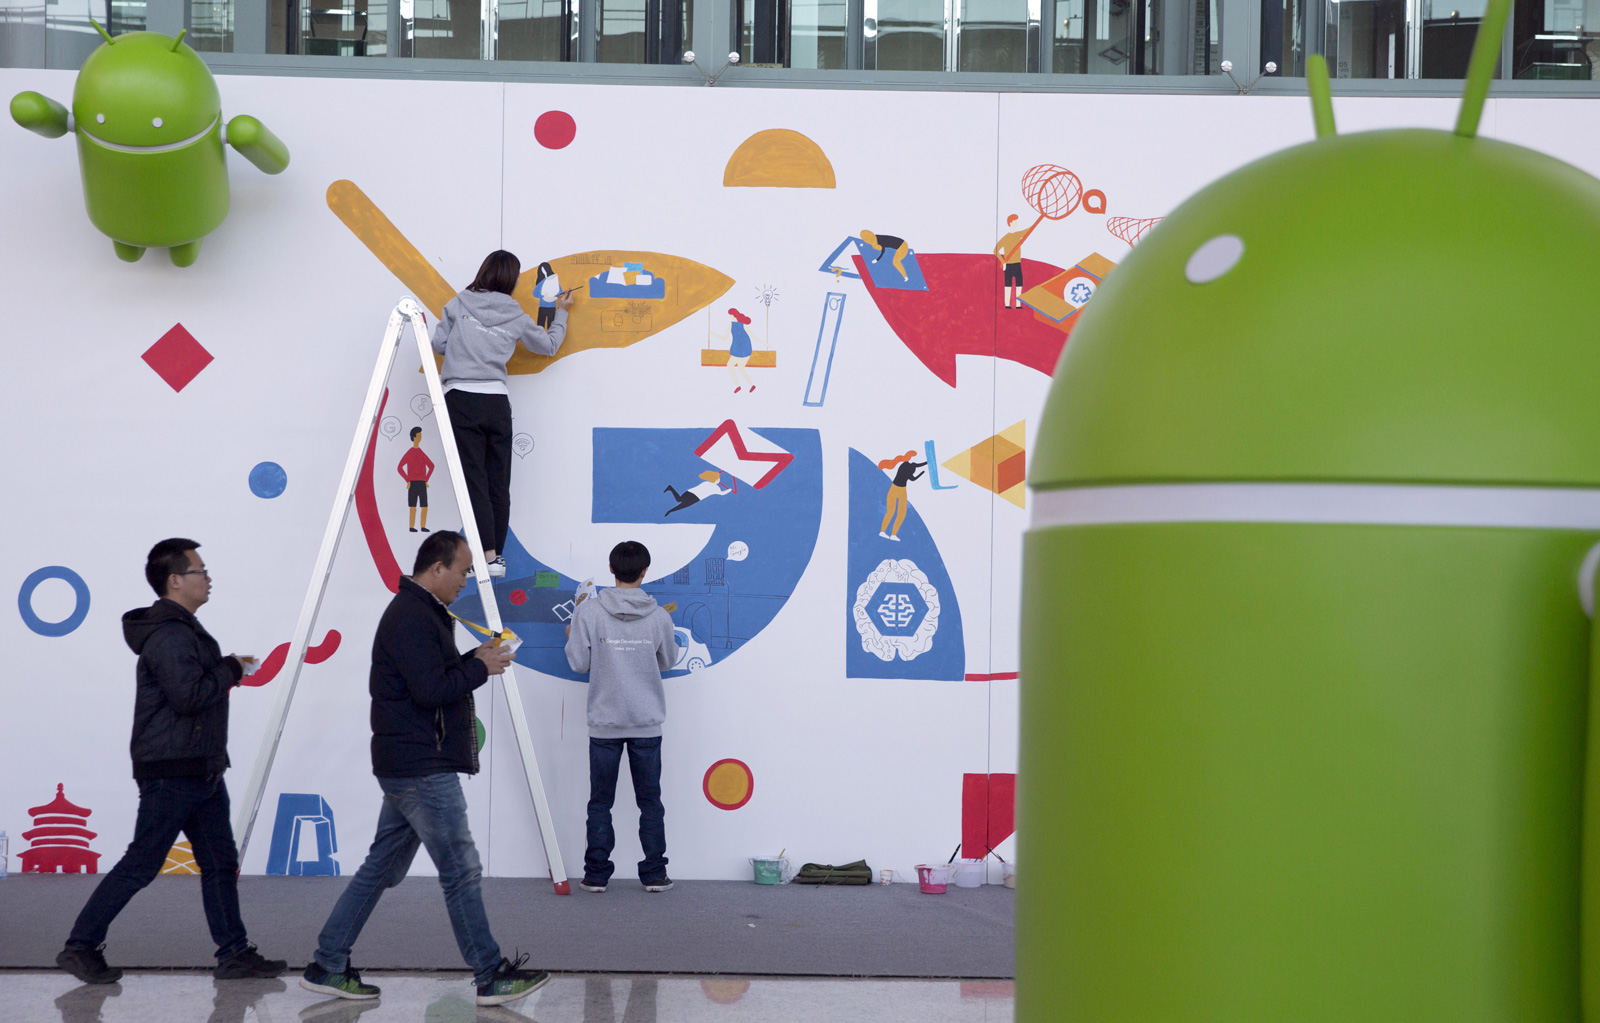 Leak Reveals Three Exciting New Features for Android 8.0